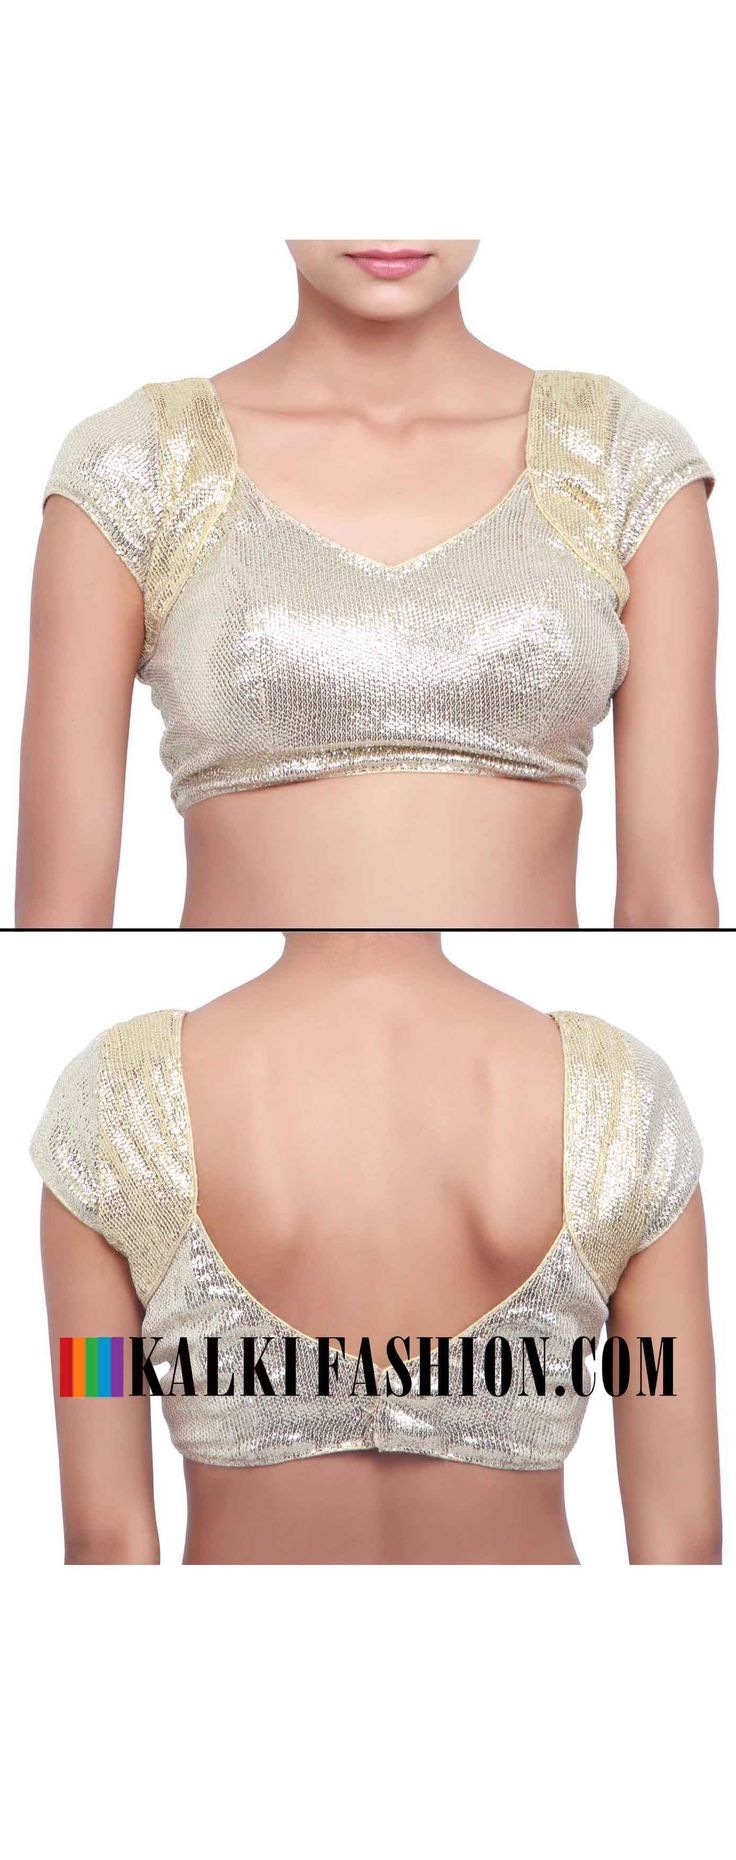 Buy online at: http://www.kalkifashion.com/gold-and-silver-sequence-blouse-only-on-kalki.html Free shipping worldwide.